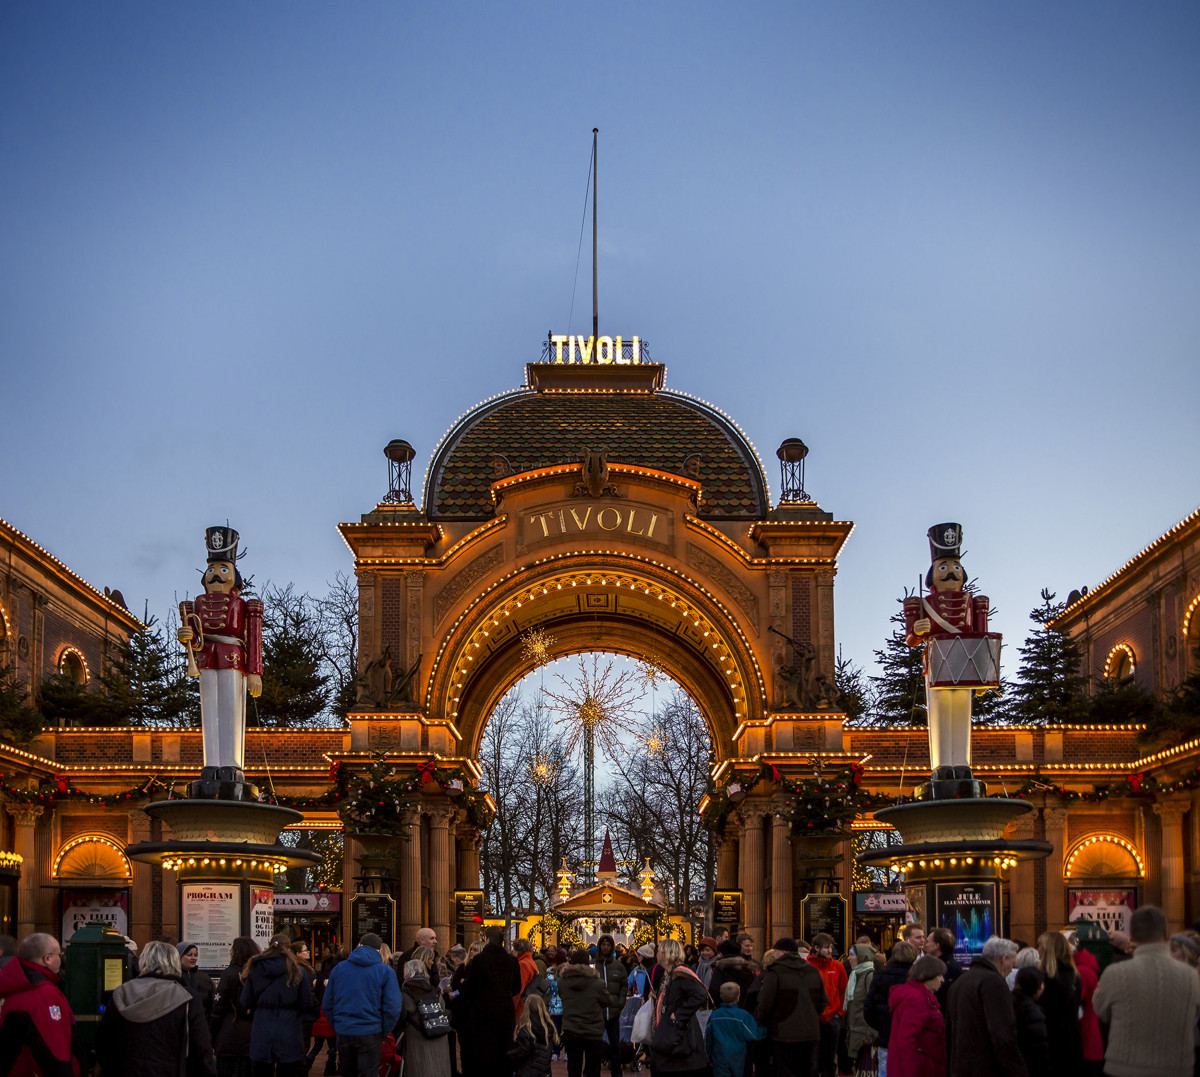 Tivoli Rome Weather A Sprinkle Of Winter Magic At Tivoli Gardens Copenhagen